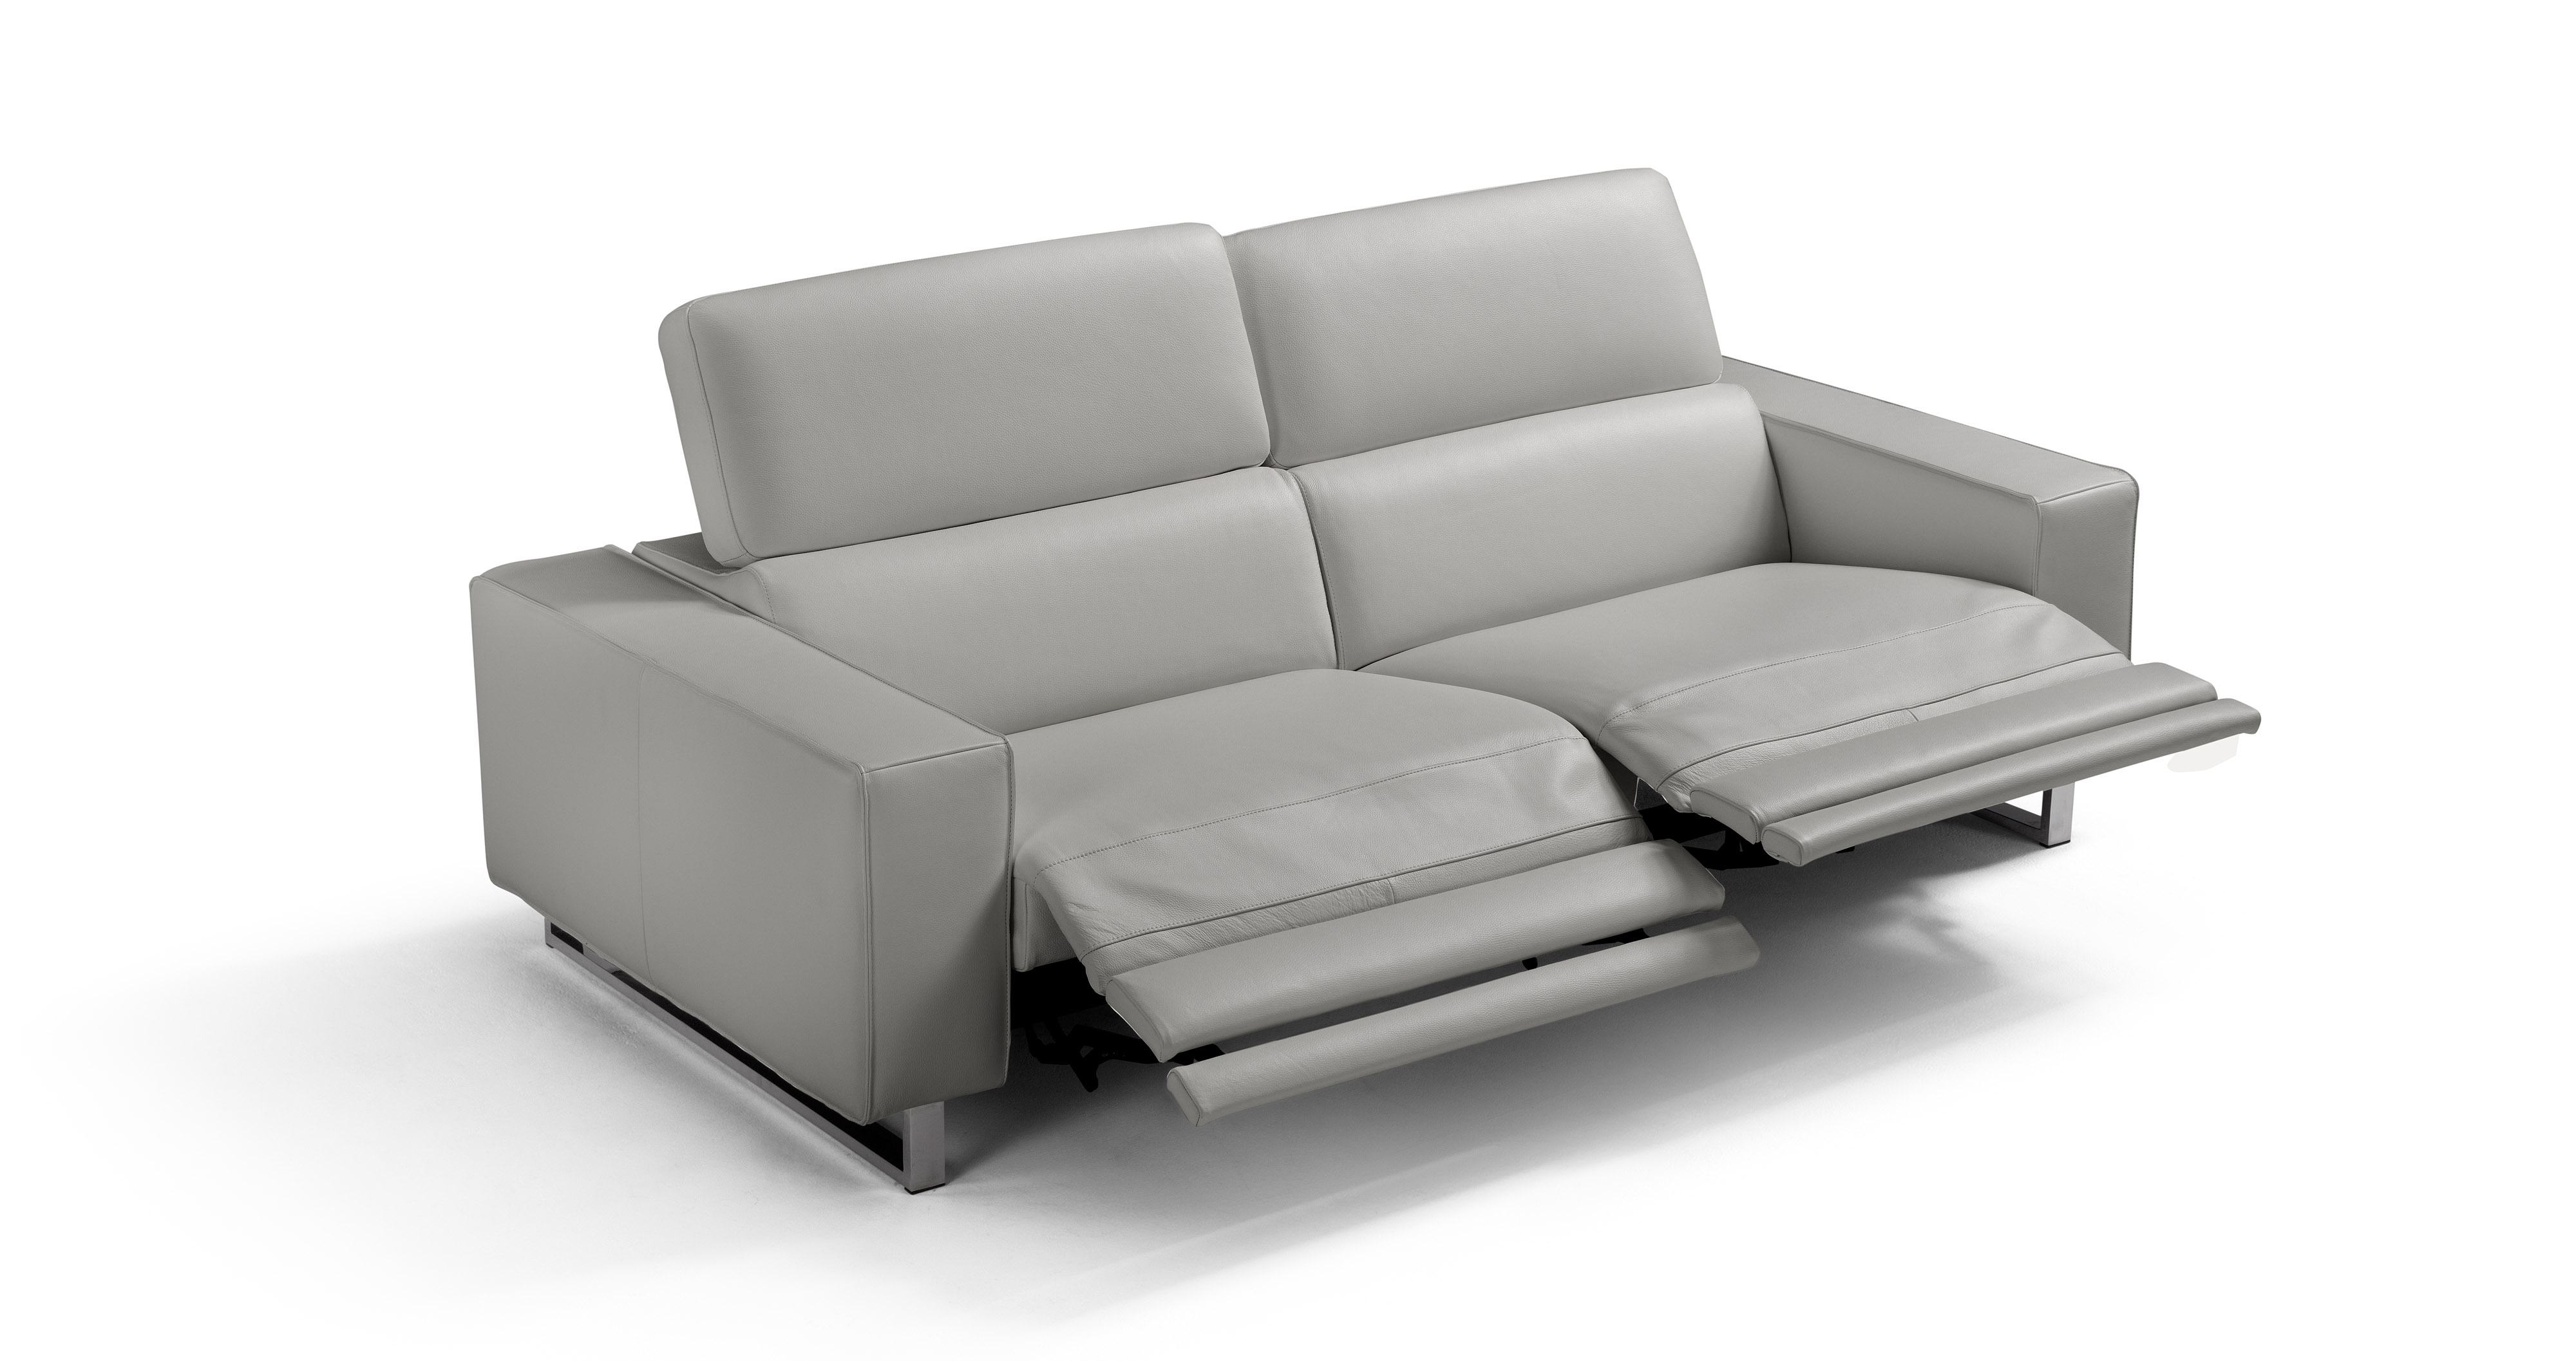 Leather Living Room Sofa with Excellent Craftsmanship